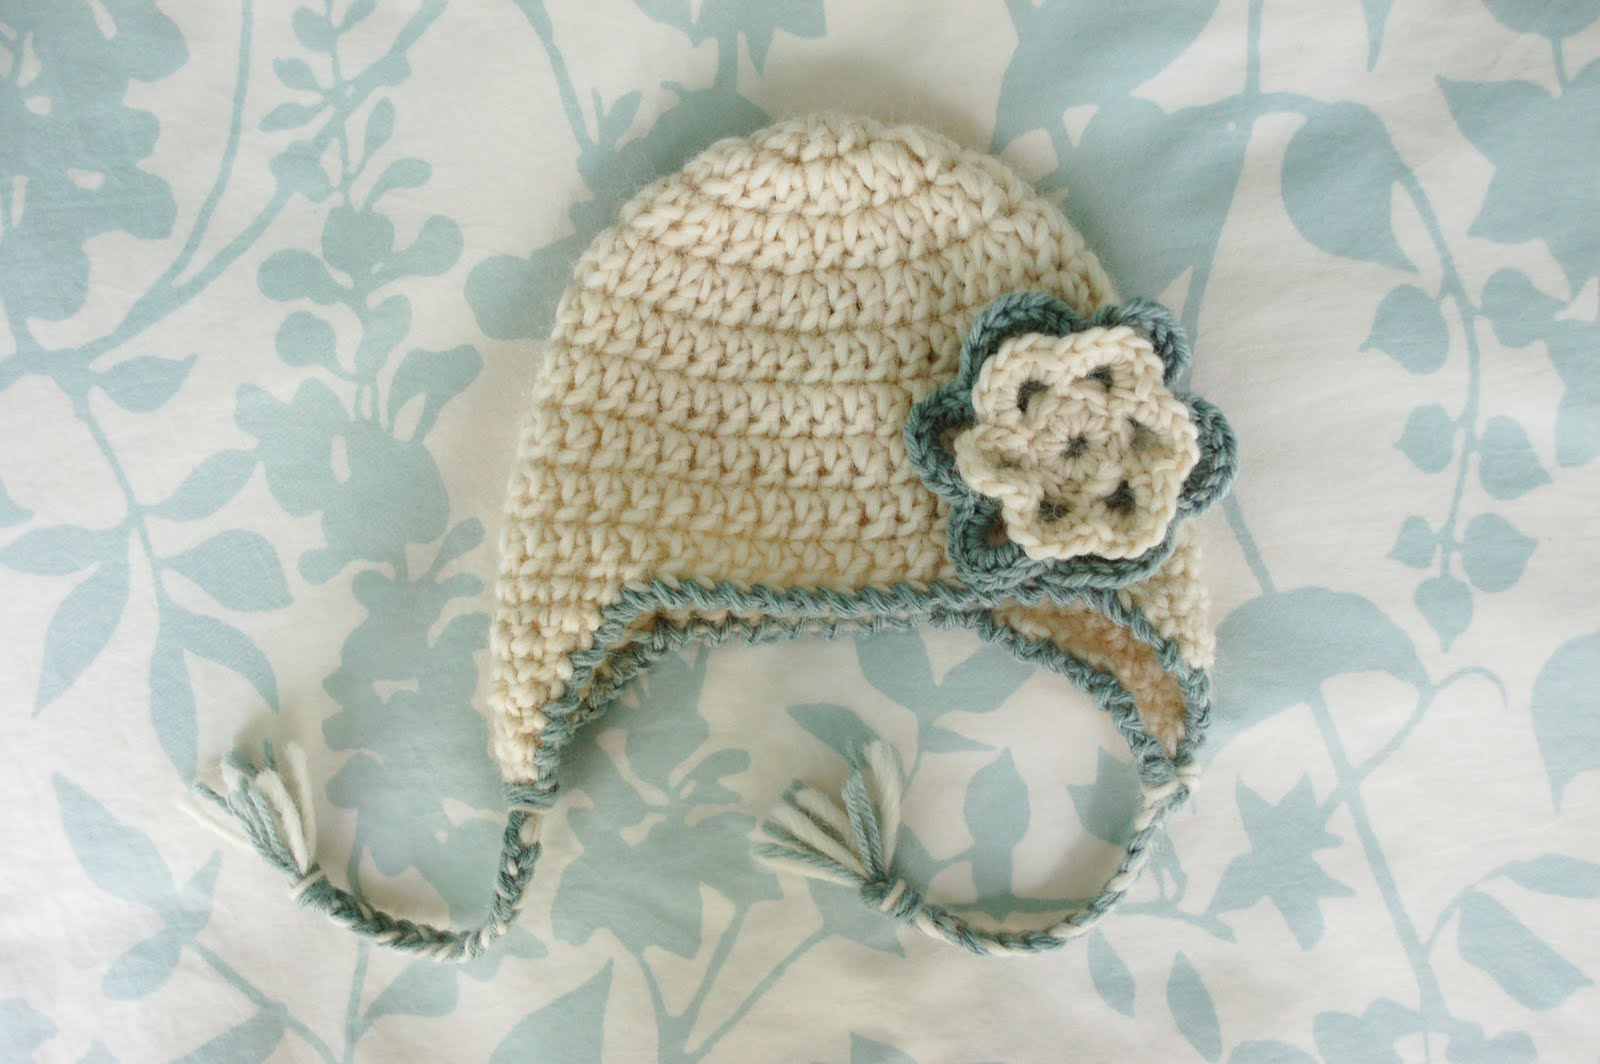 Crochet Patterns Of Baby Hats : Alli Crafts: Free Pattern: Baby Earflap Hat - Newborn